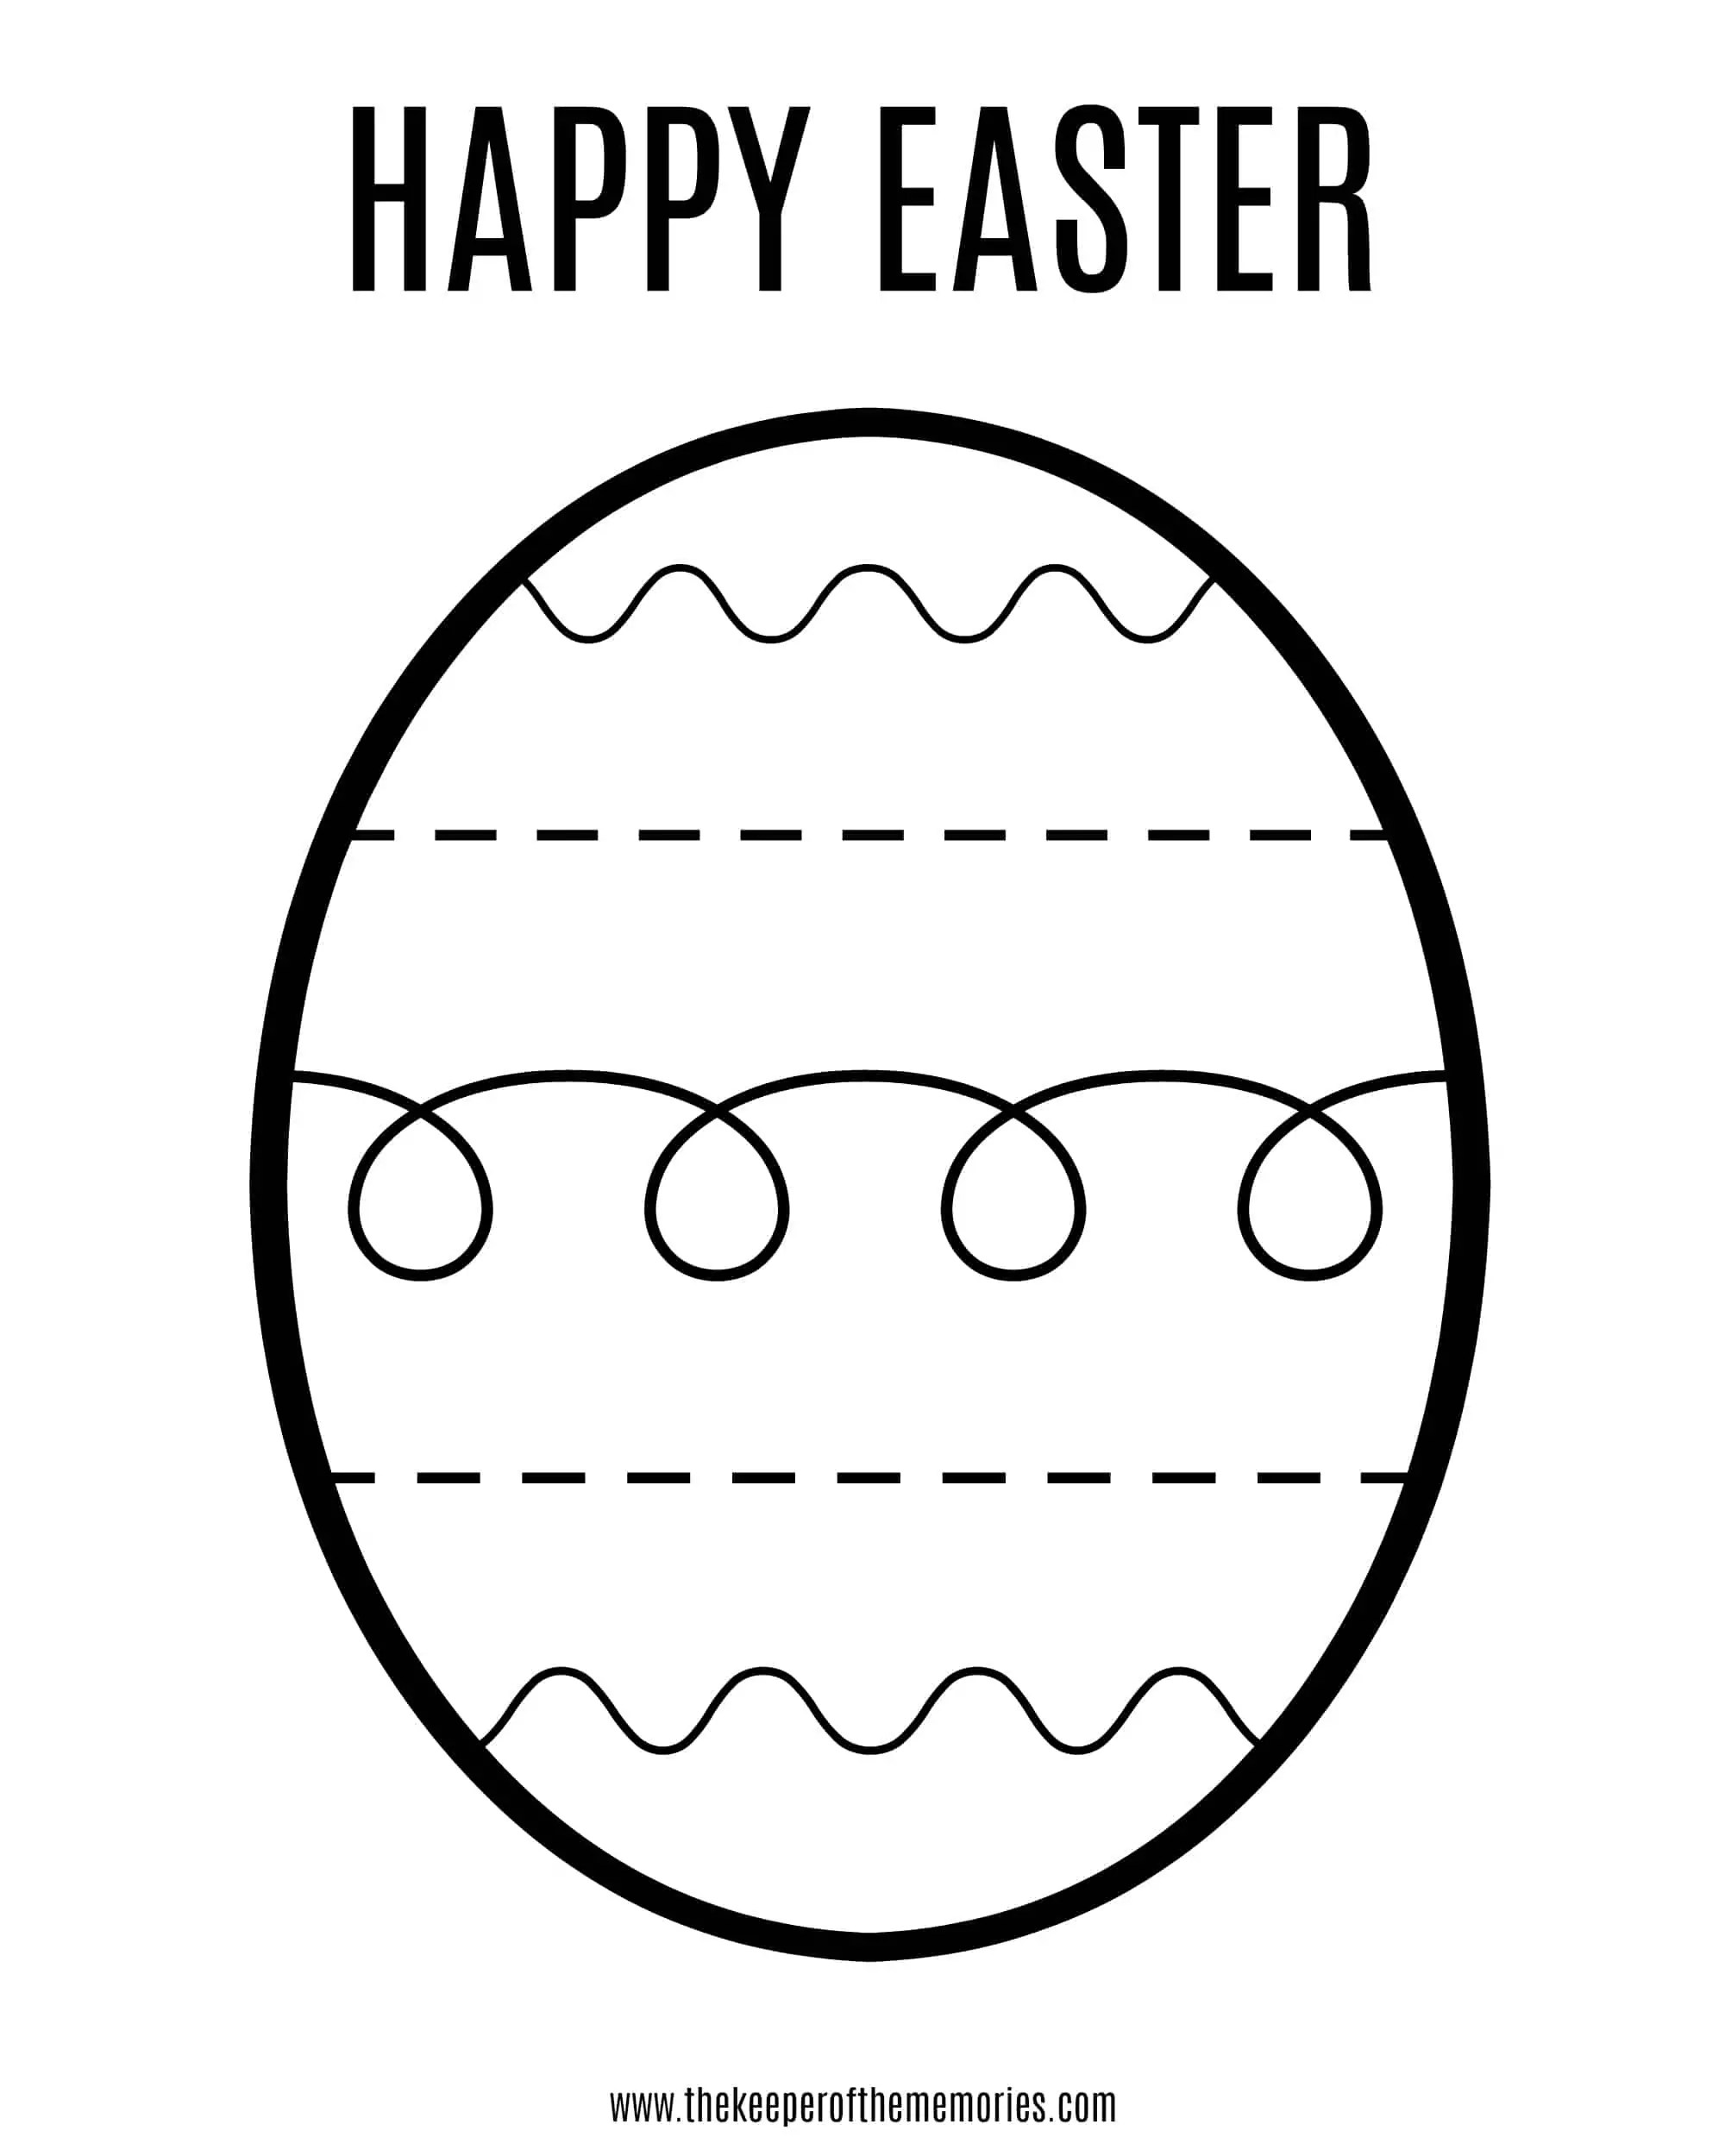 Free Printable Easter Coloring Sheet For Little Kids